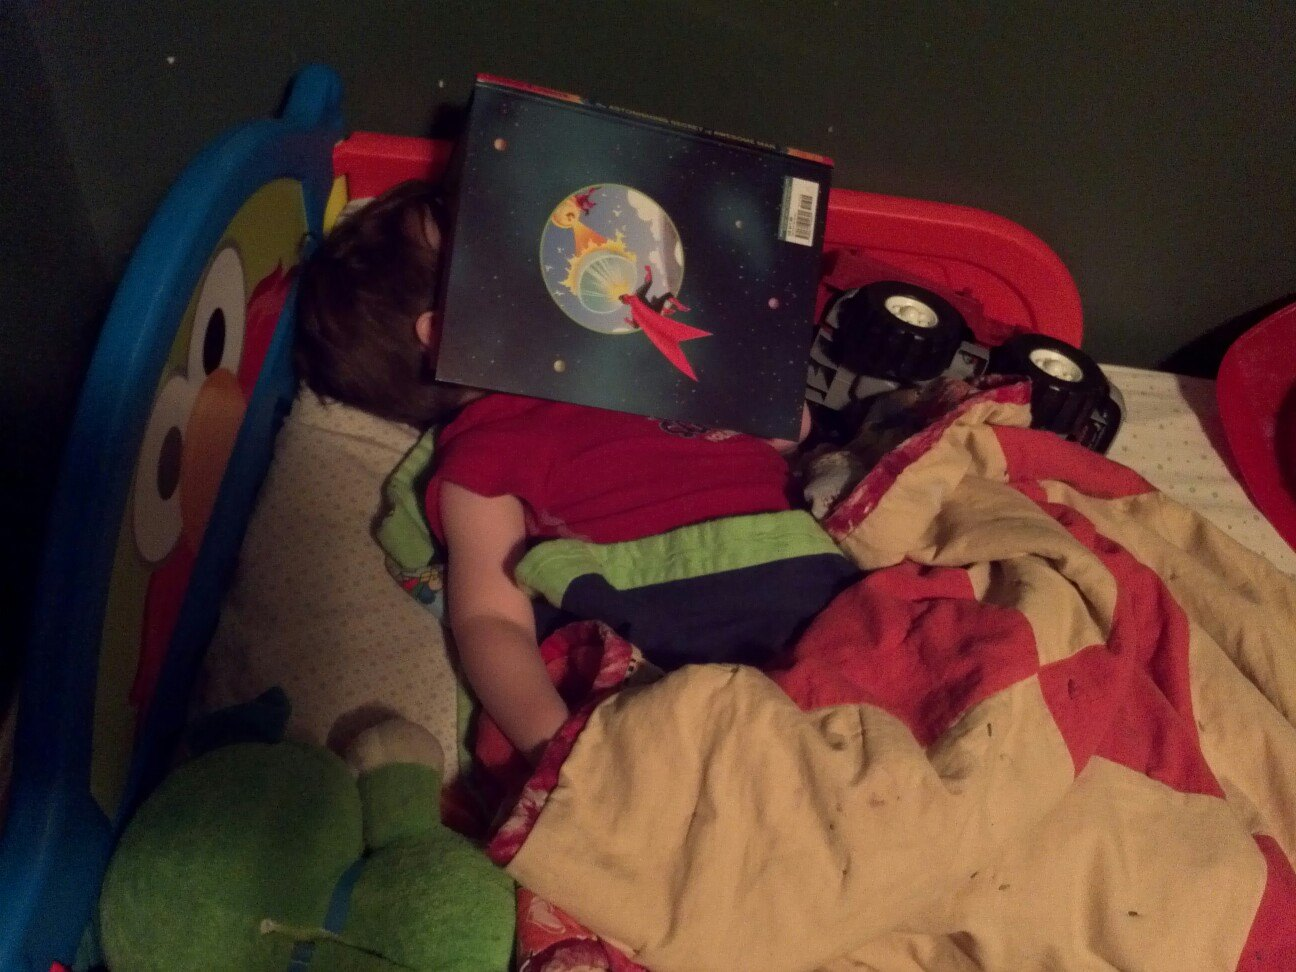 Three year old asleep under a book